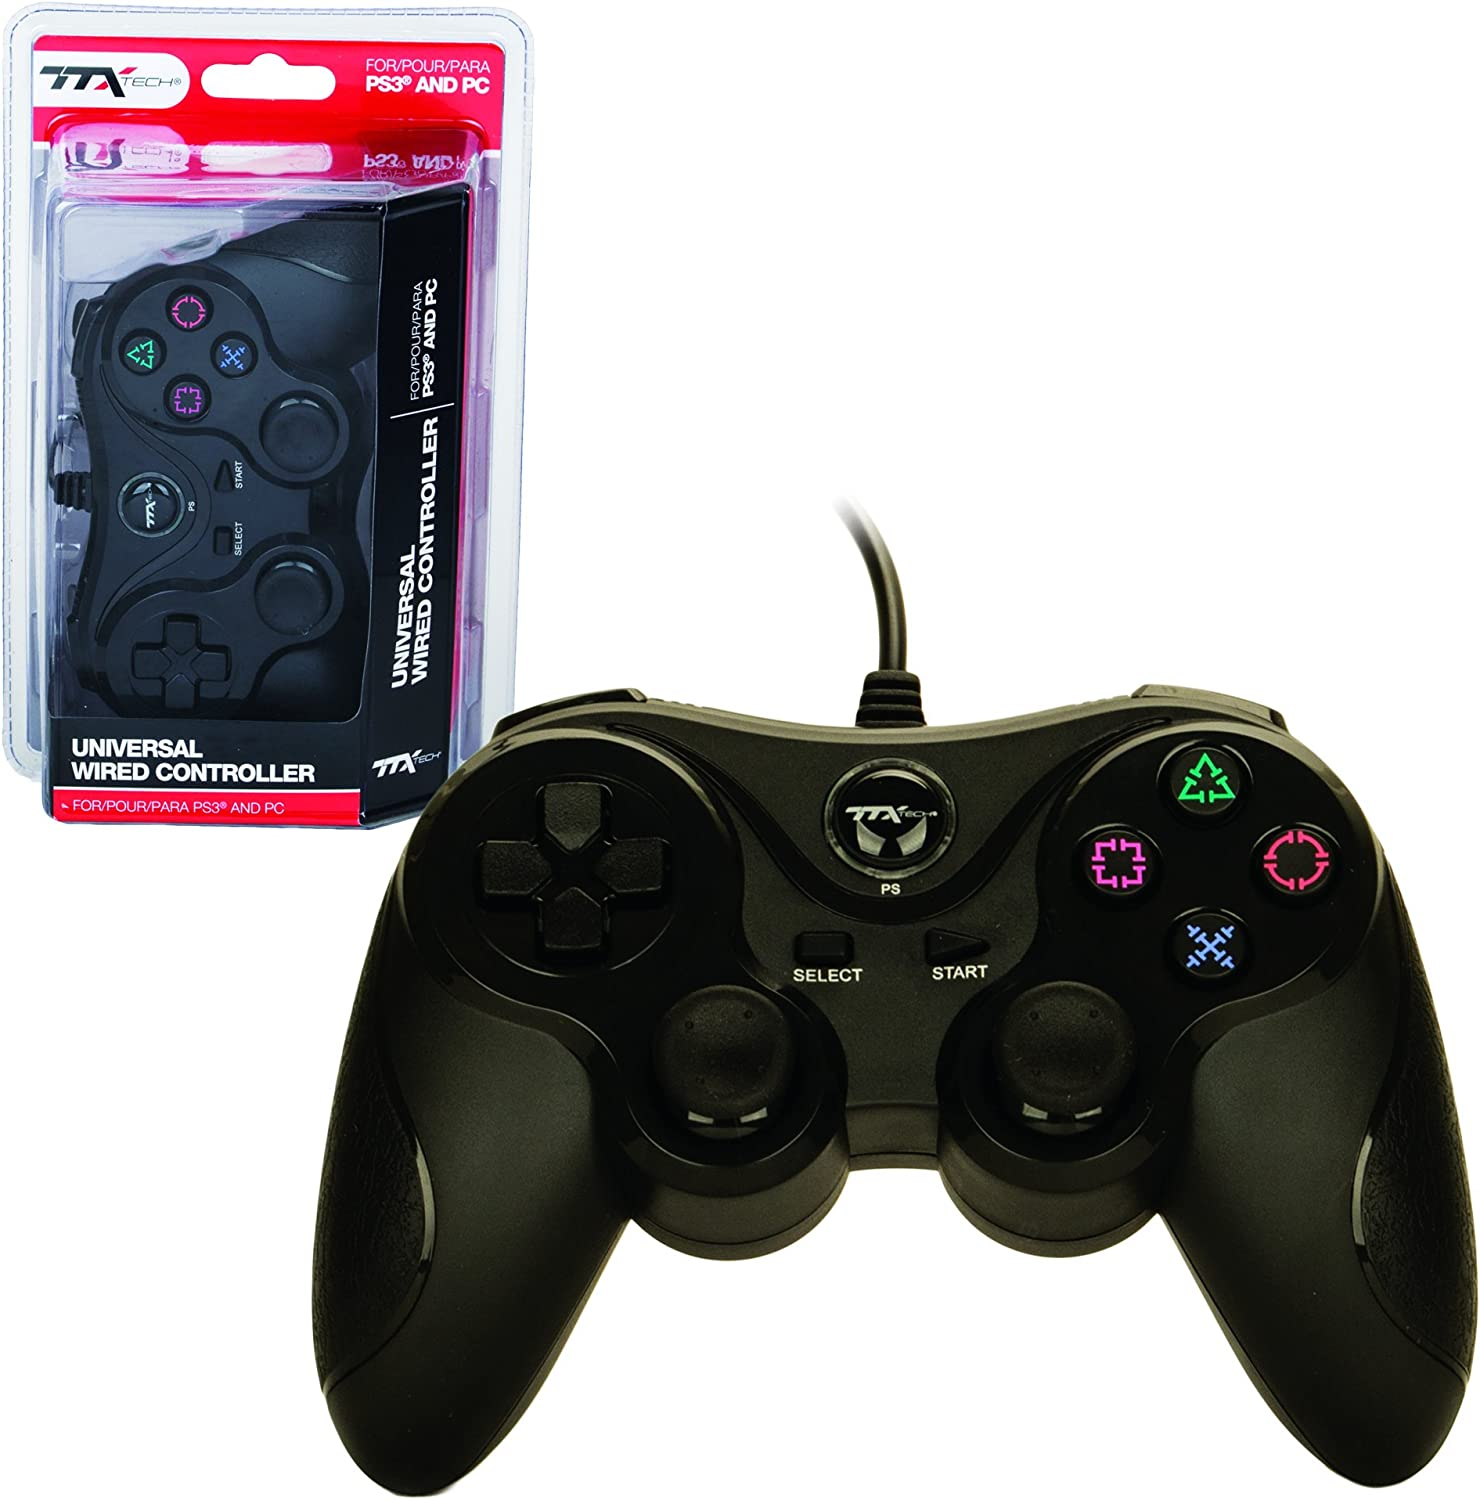 TTX PS3 Controller - Wired - USB Controller - PC Compatible - Black (TTX Tech) - PlayStation 3